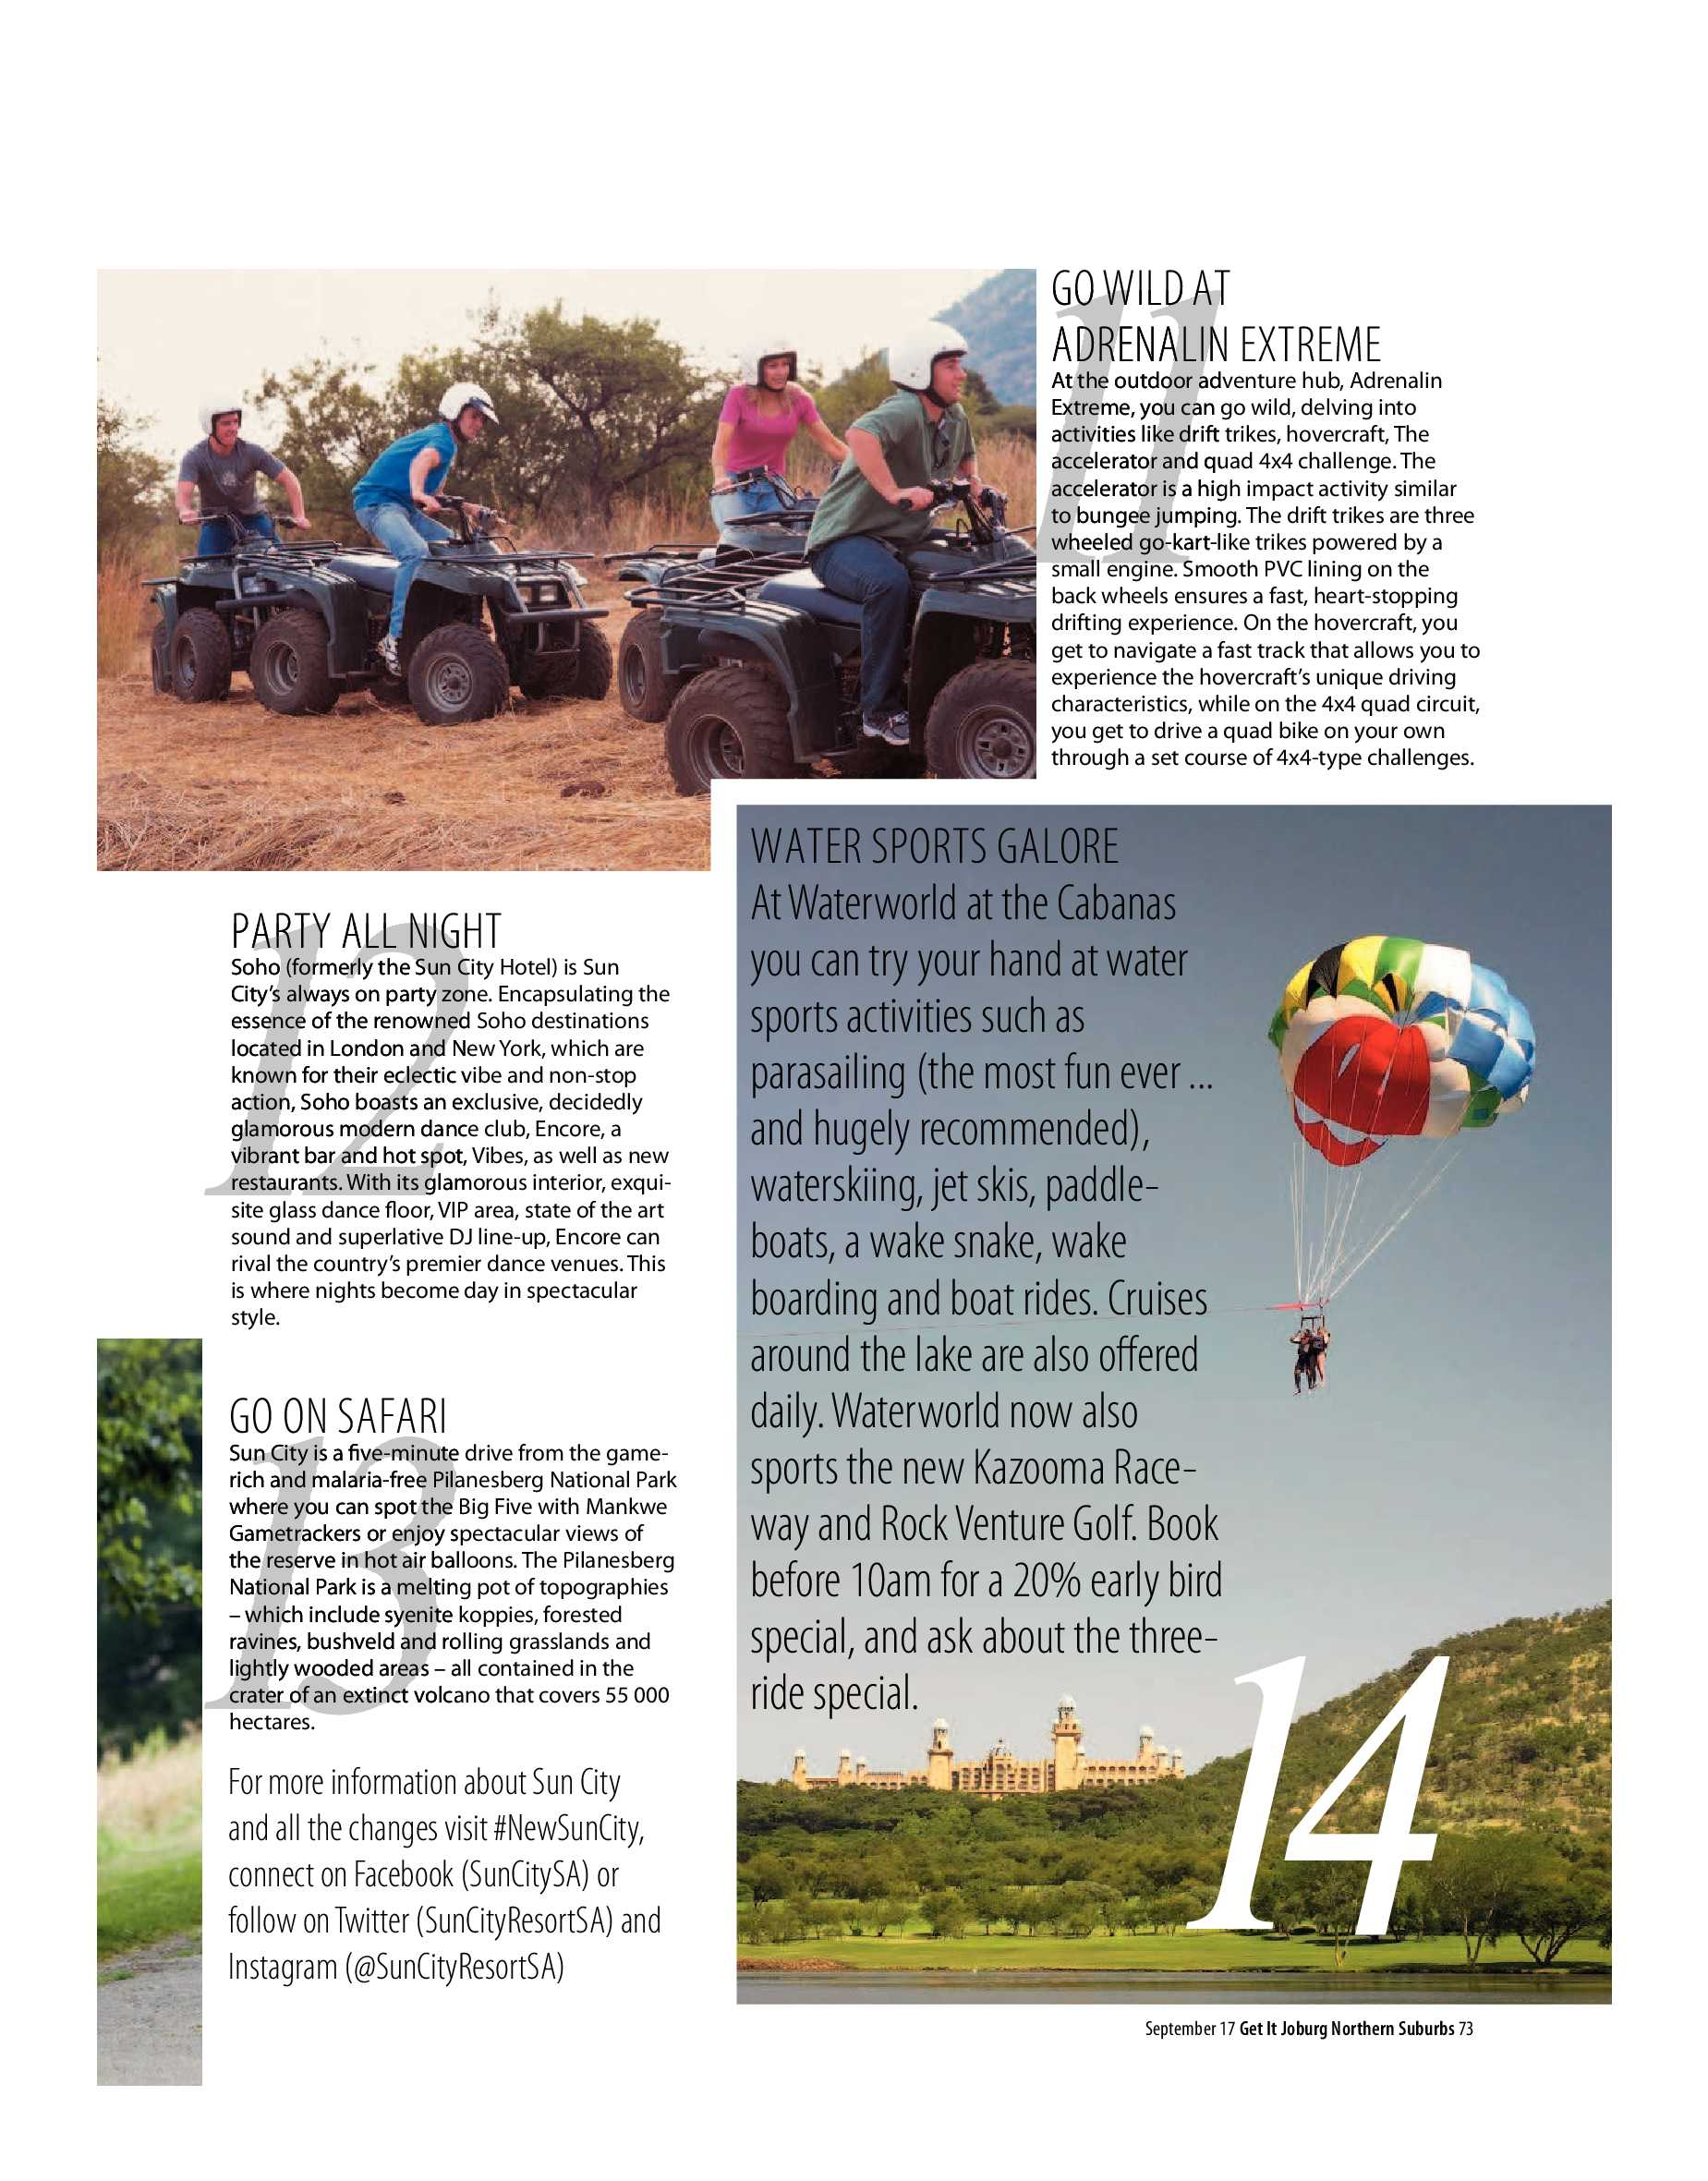 get-joburg-north-september-2017-epapers-page-75